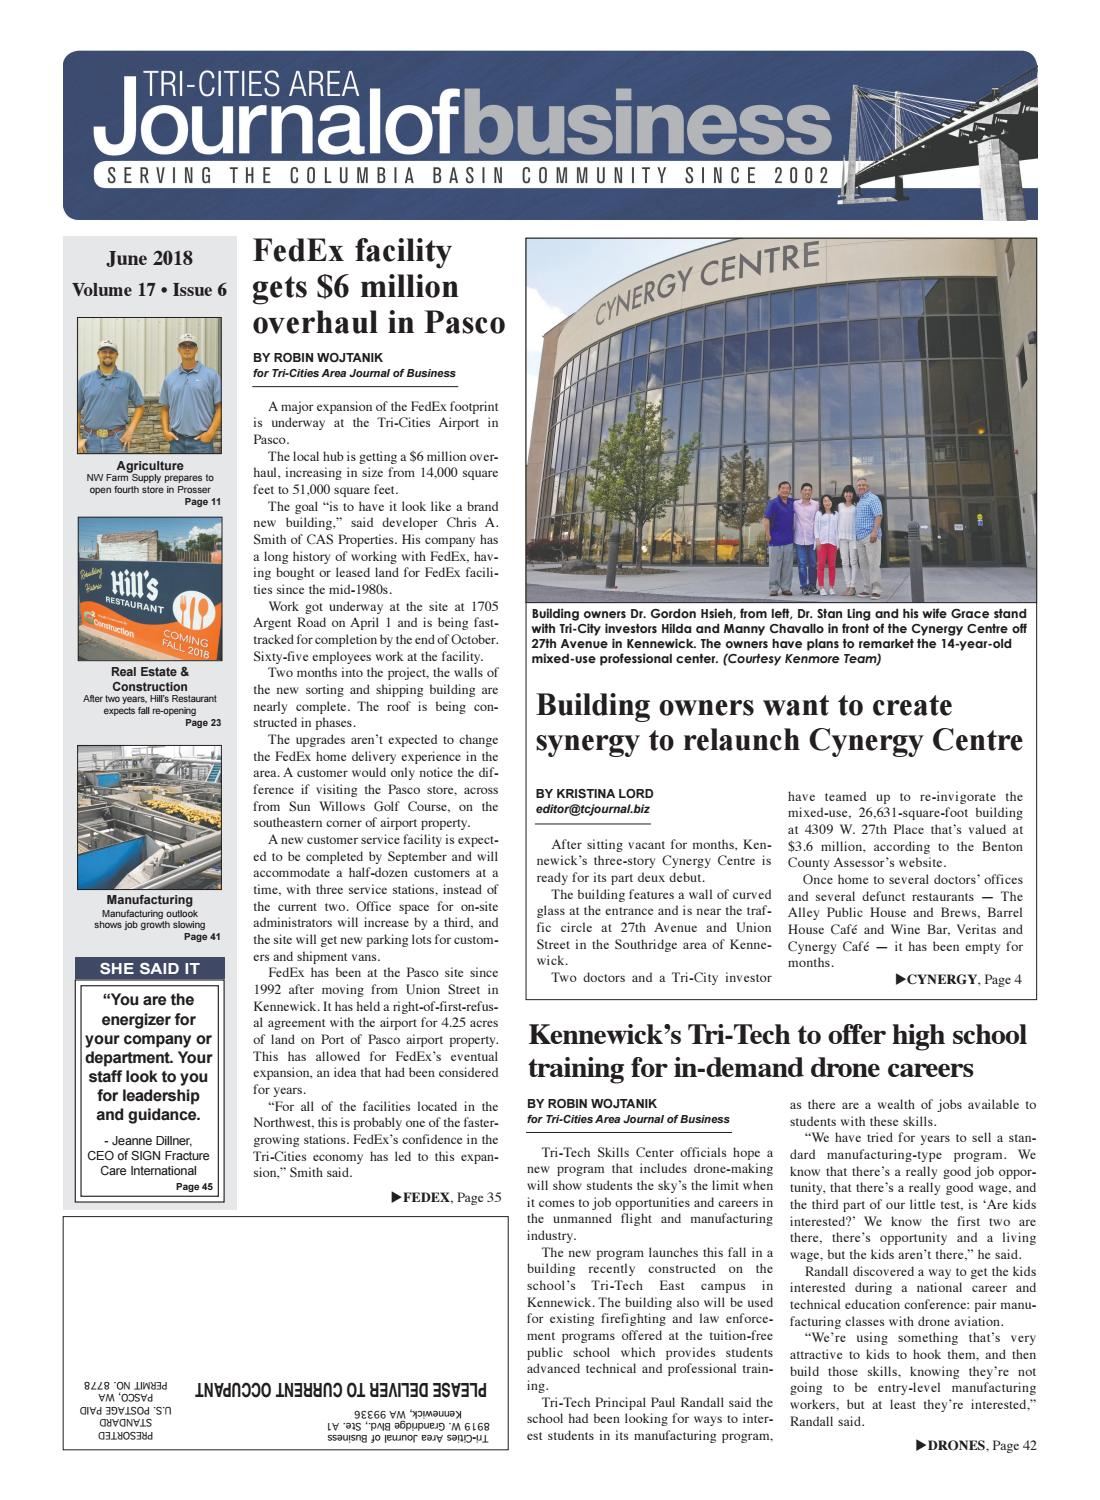 Tri-Cities Area Journal of Business -- June 2018 by Tri